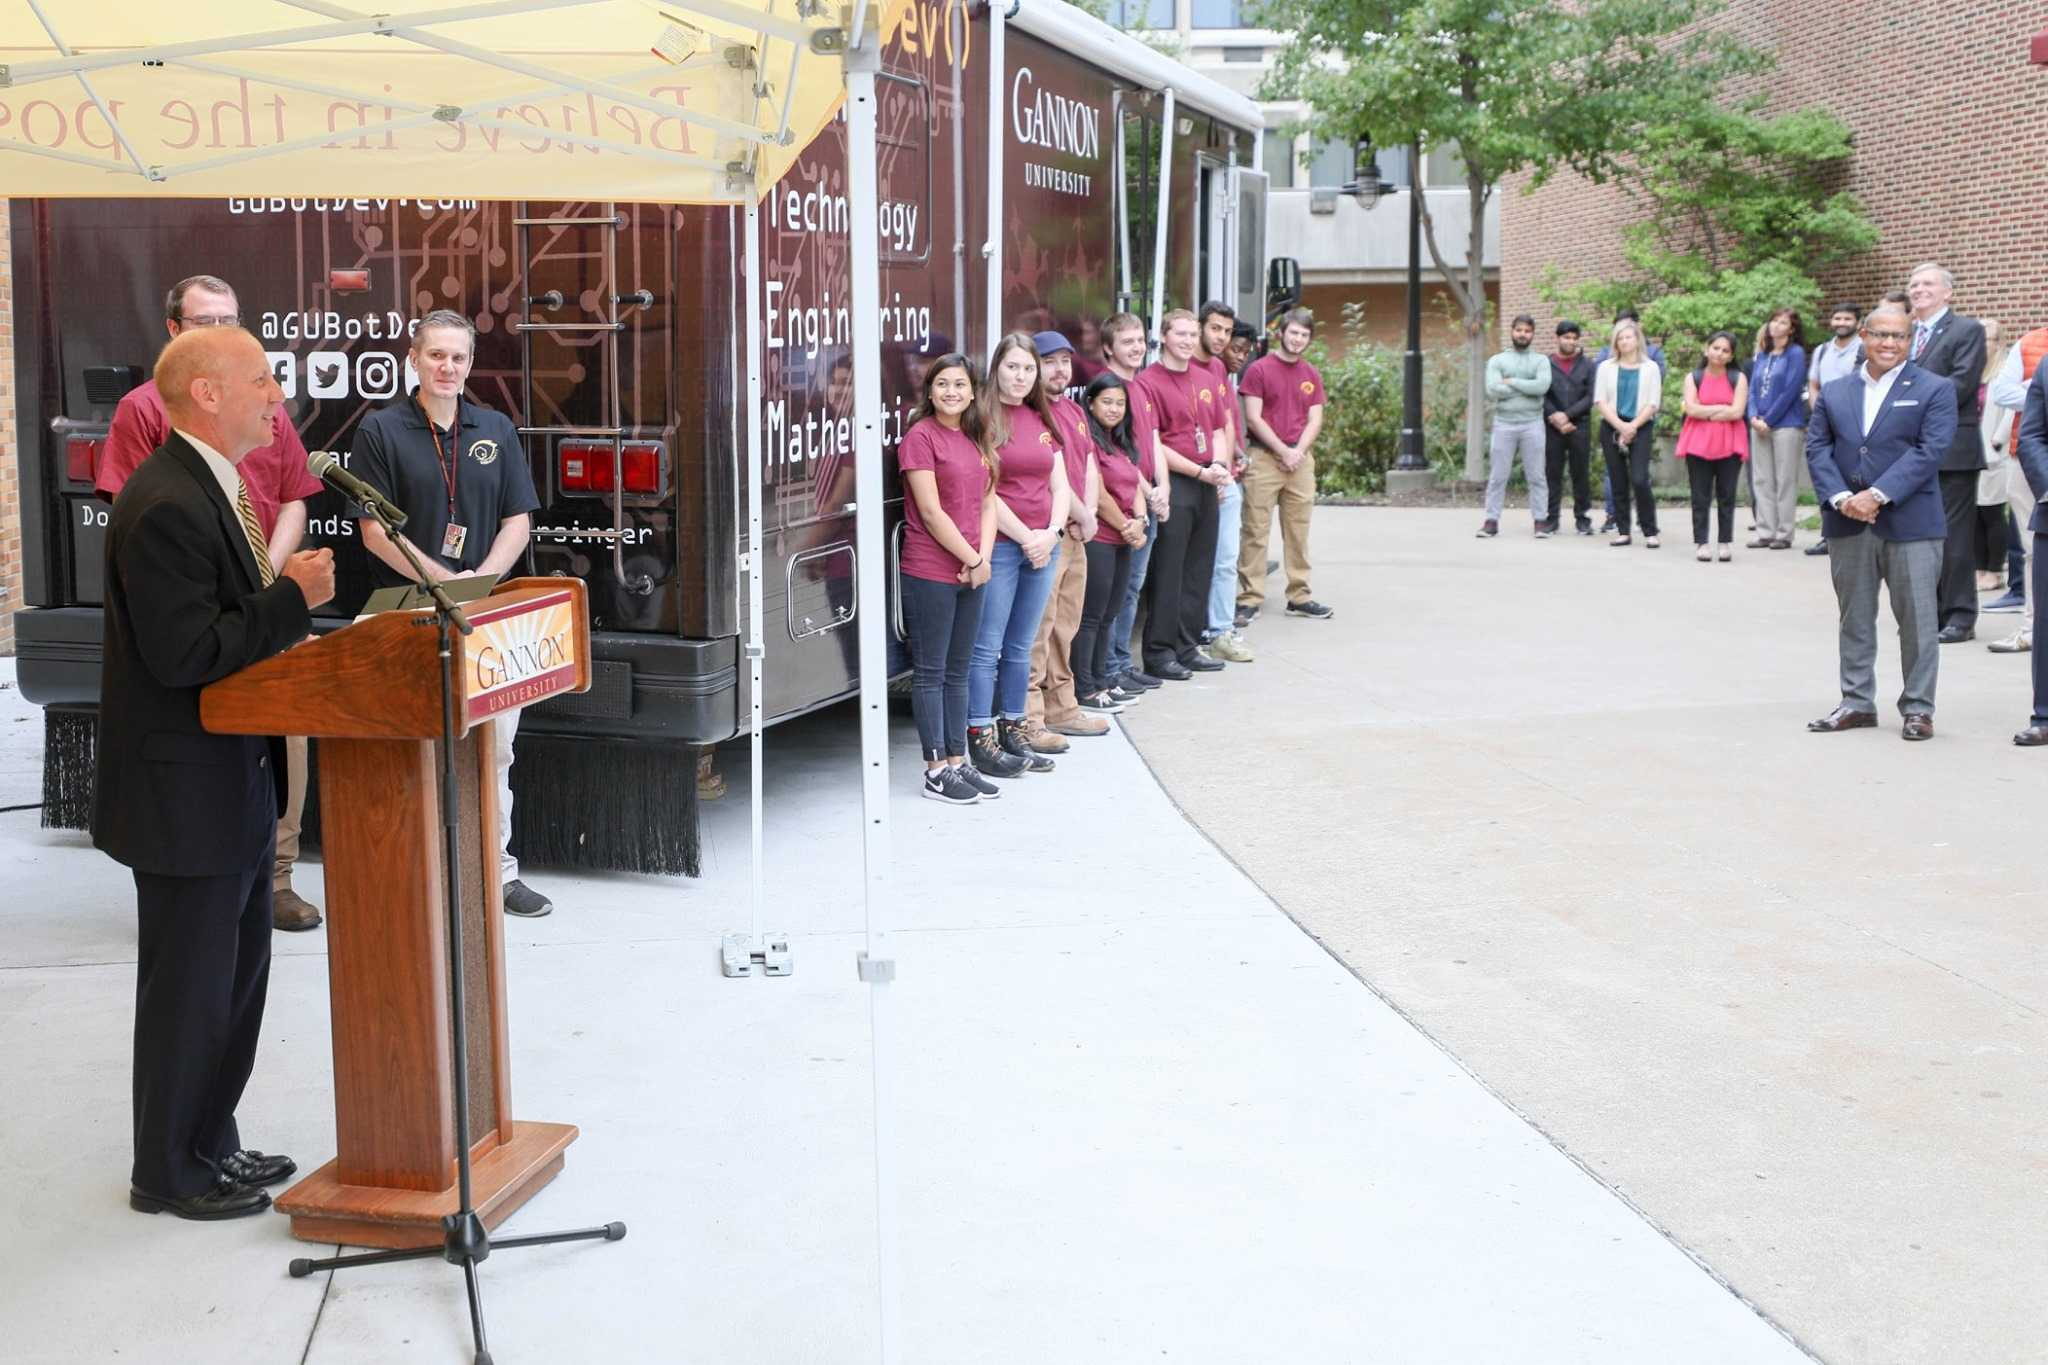 Mobile STEM lab to spread innovation nationwide